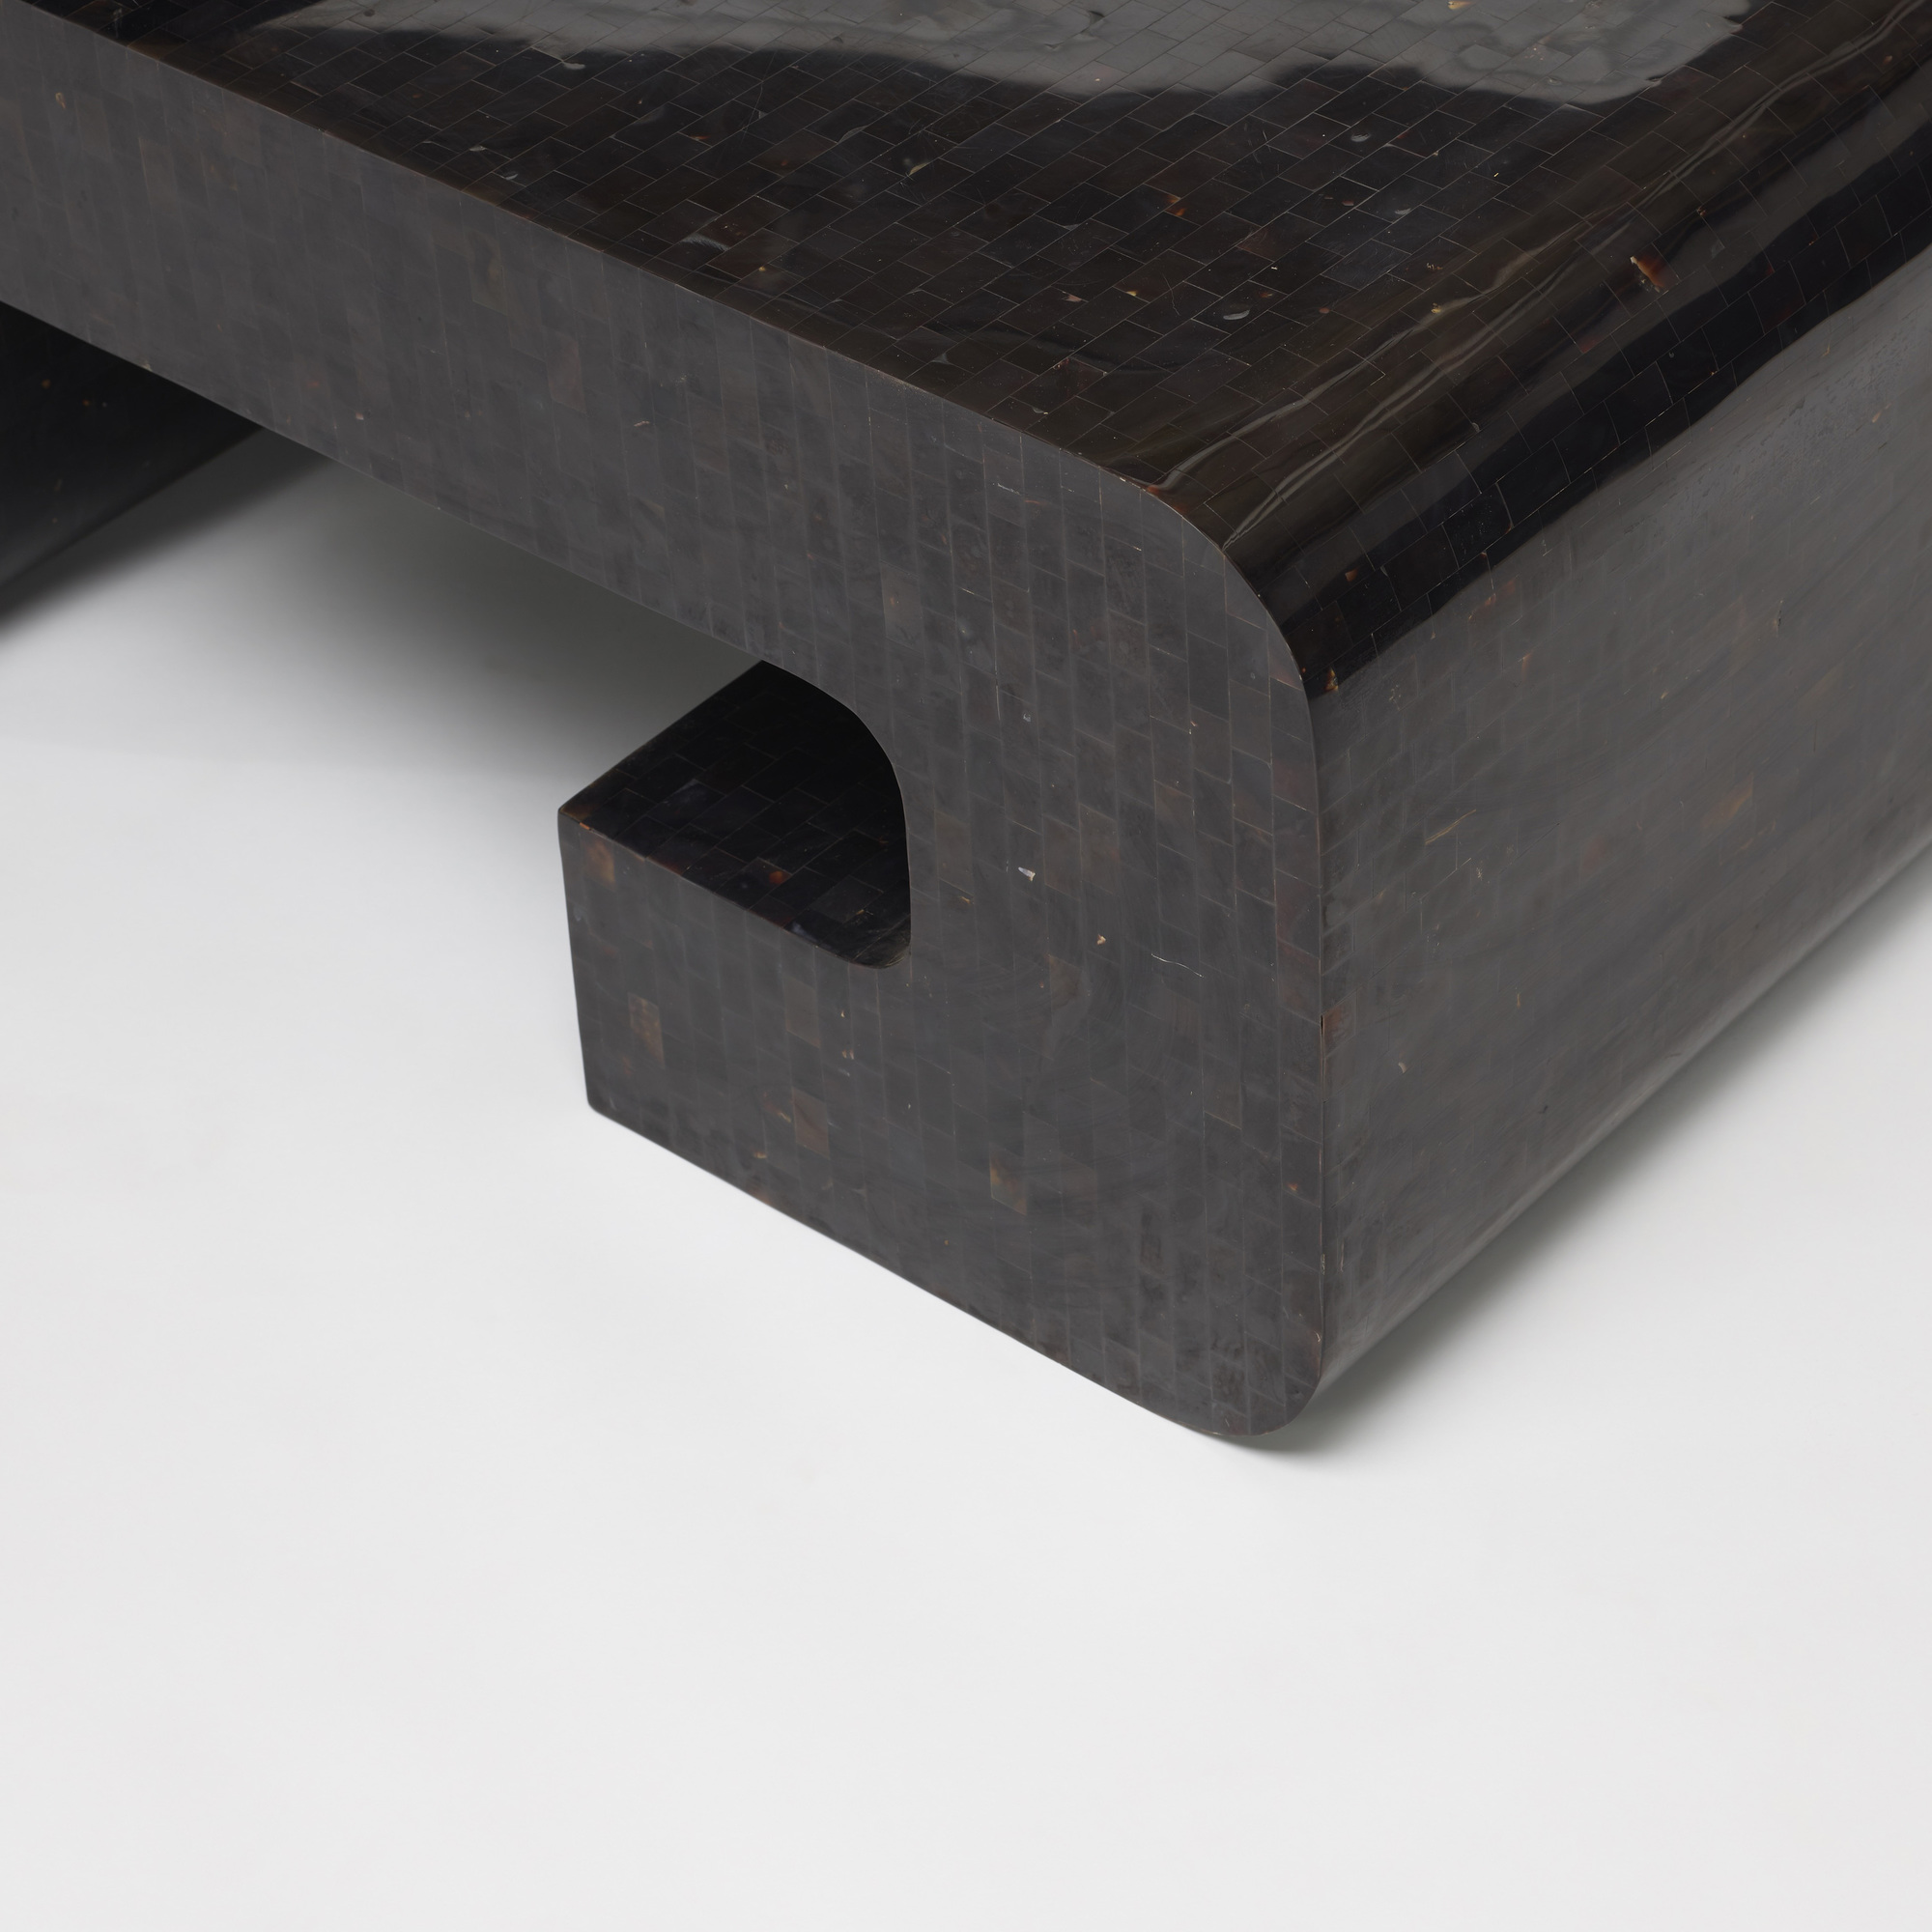 318: Karl Springer / Sculpture coffee table (5 of 5)